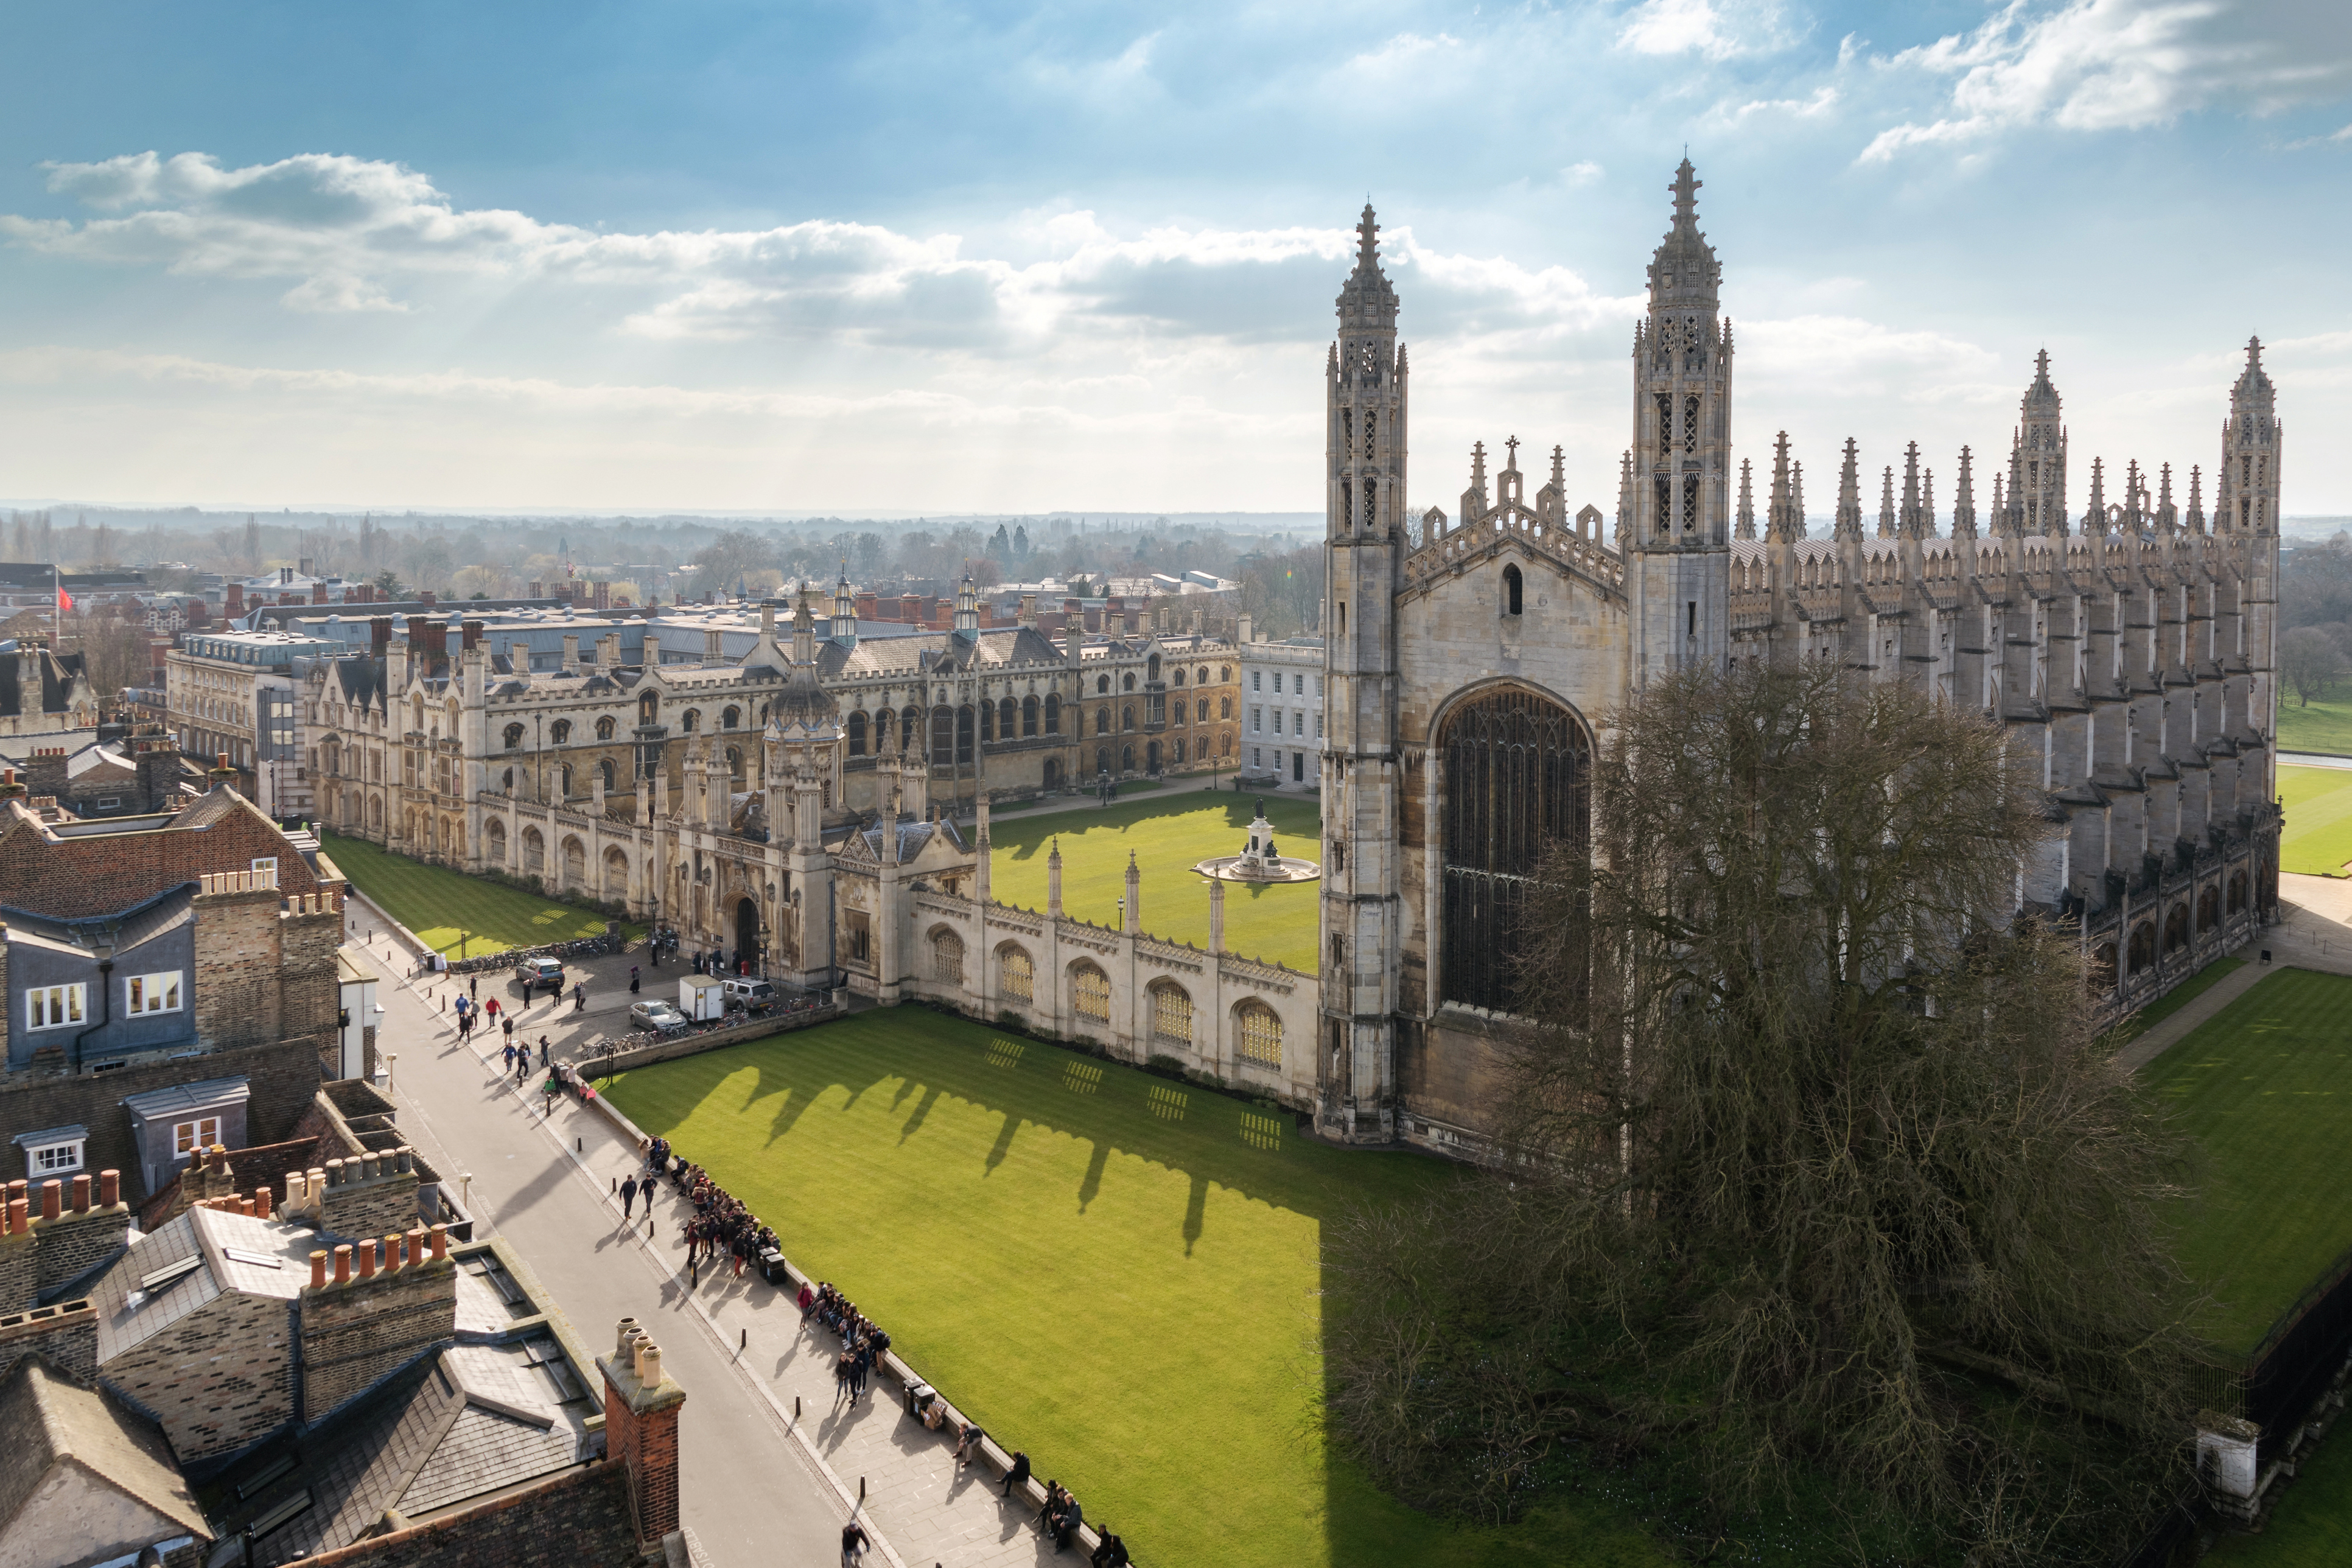 a view from the top over kings college of cambridge university together with cambridge main kings parade